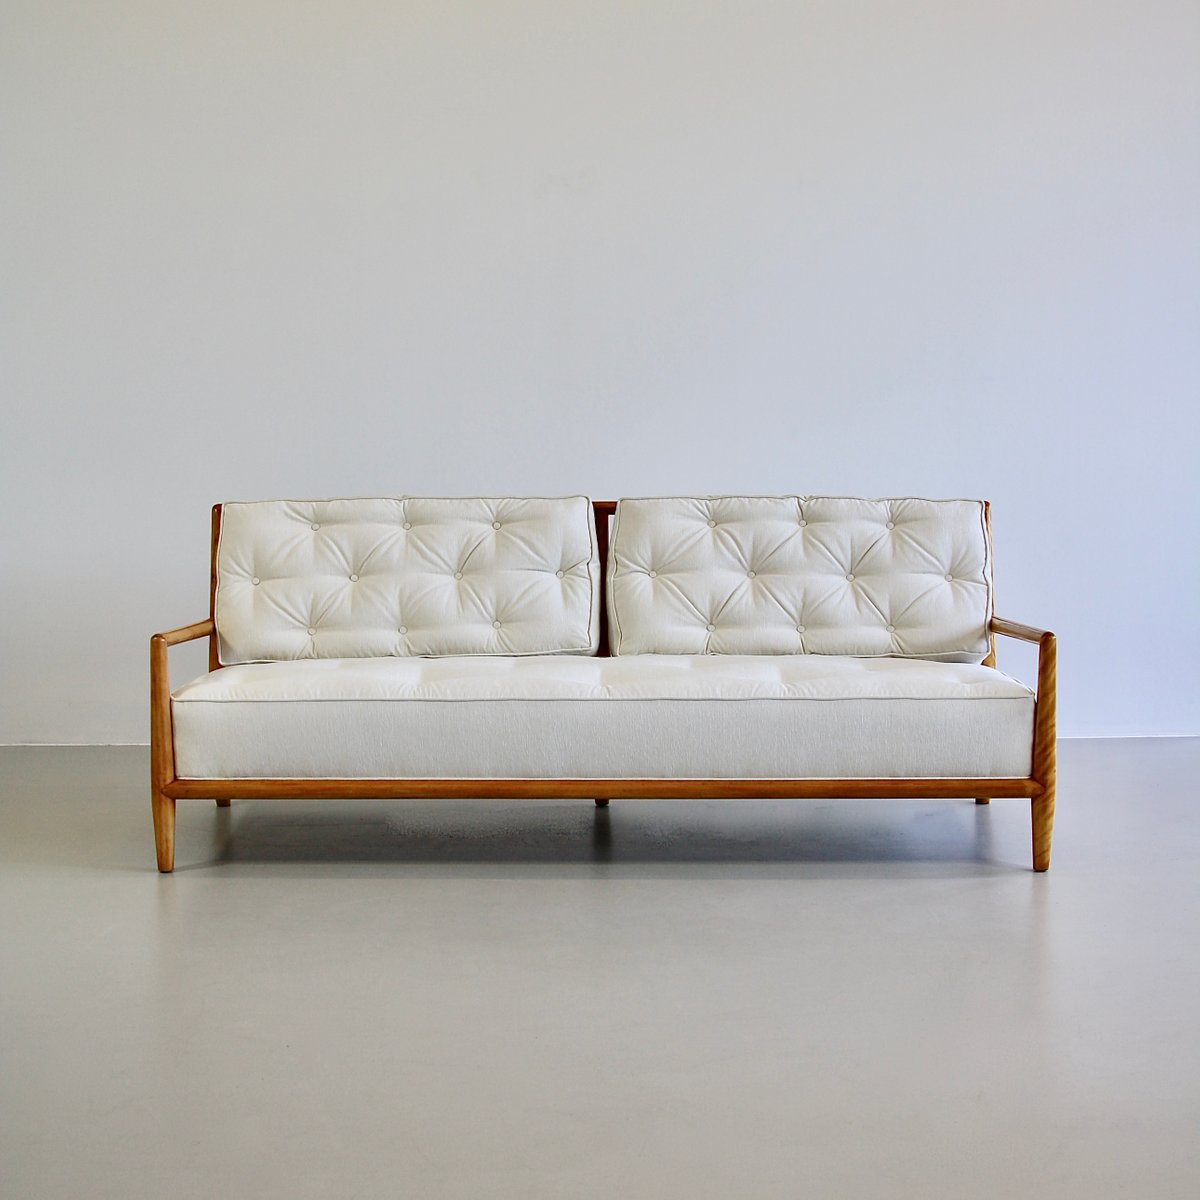 Large Mid Century Sofa By T H Robsjohn Gibbings For Widdicombe 1950s For Sale At Pamono